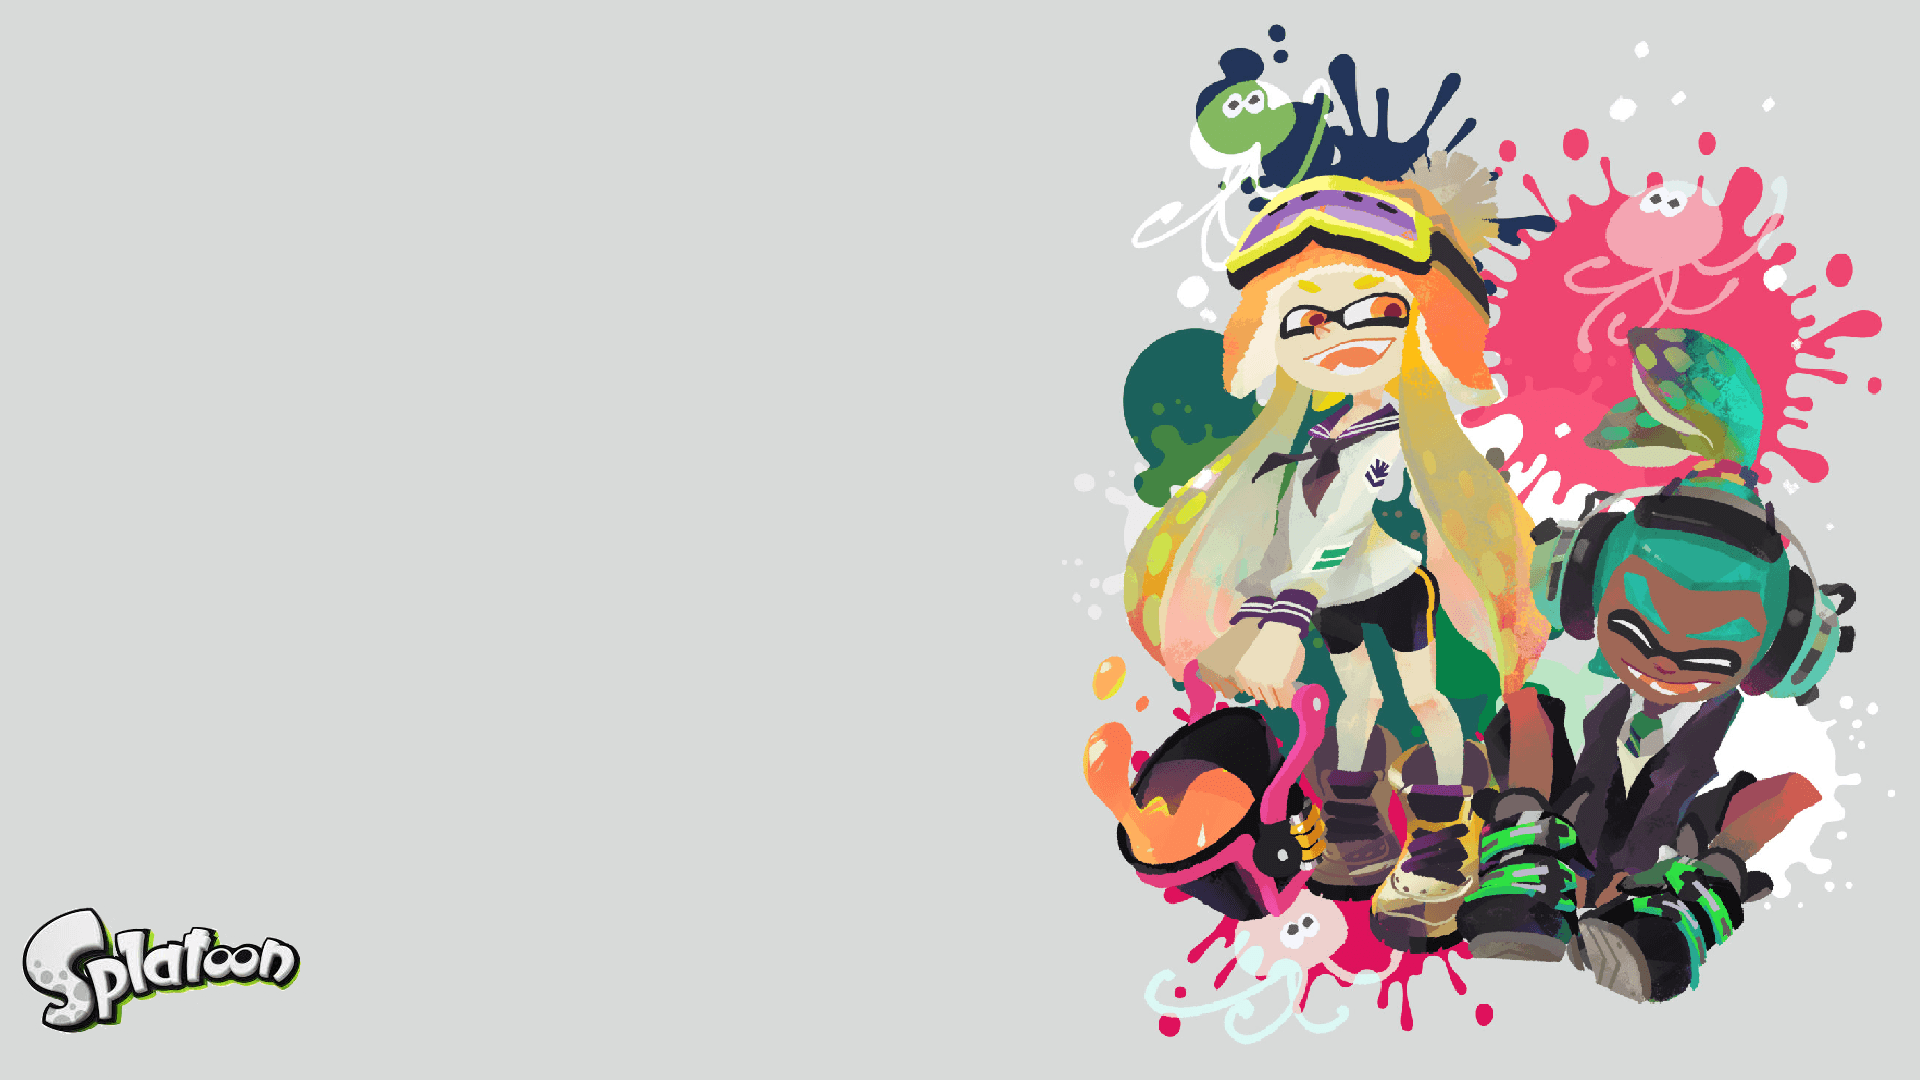 Splatoon Wallpapers Wallpaper Cave